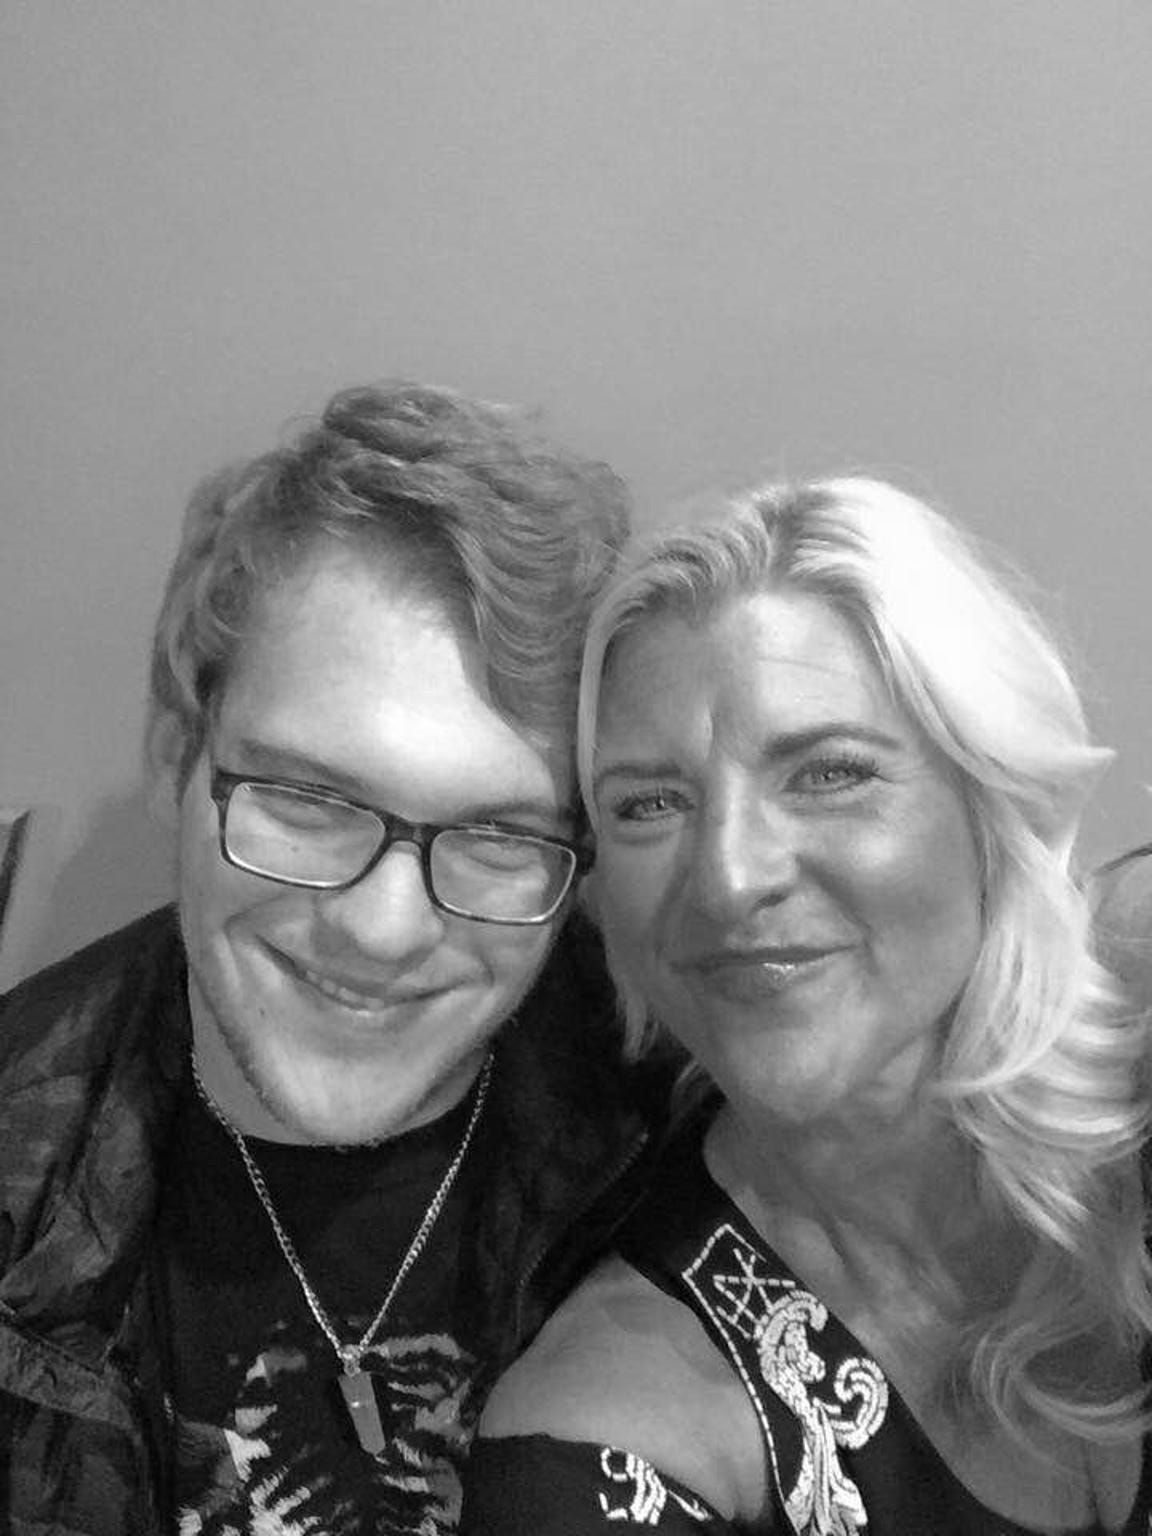 Pamela Knight and her son, Connor.